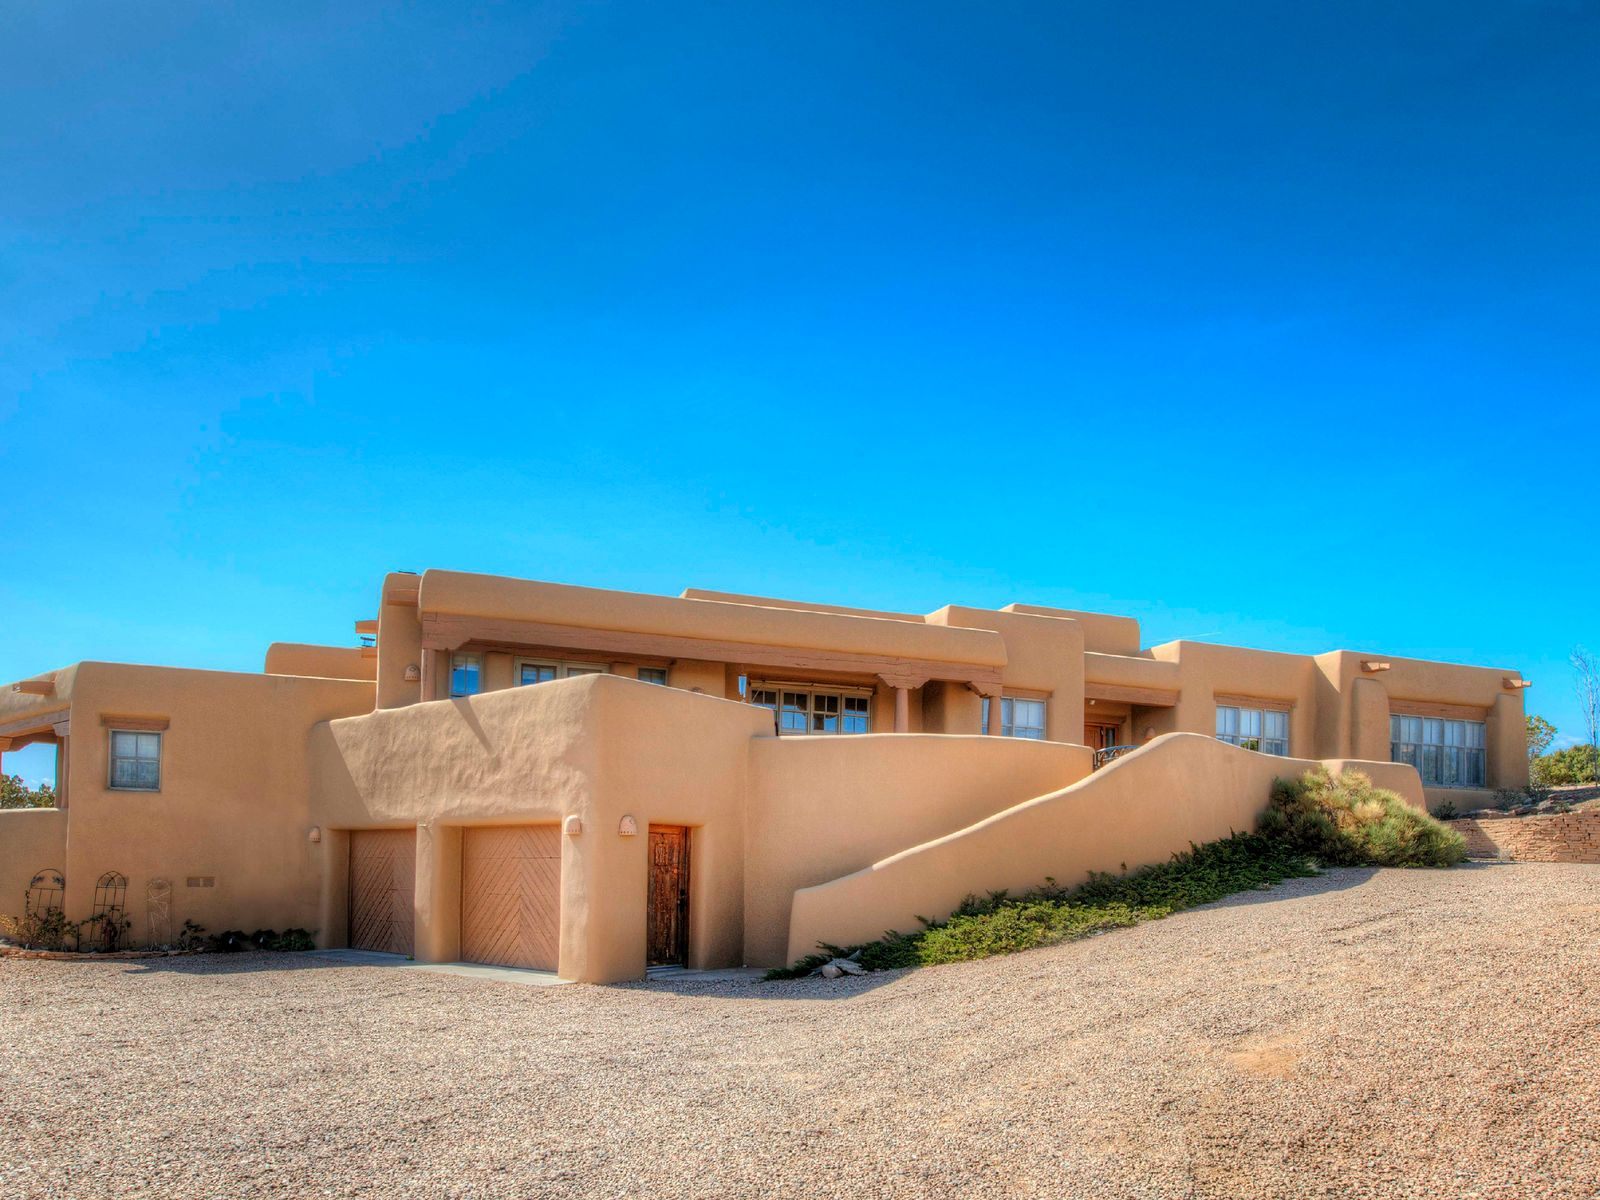 12 Hollyhock Circle, Santa Fe NM Single Family Home - Santa Fe Real Estate